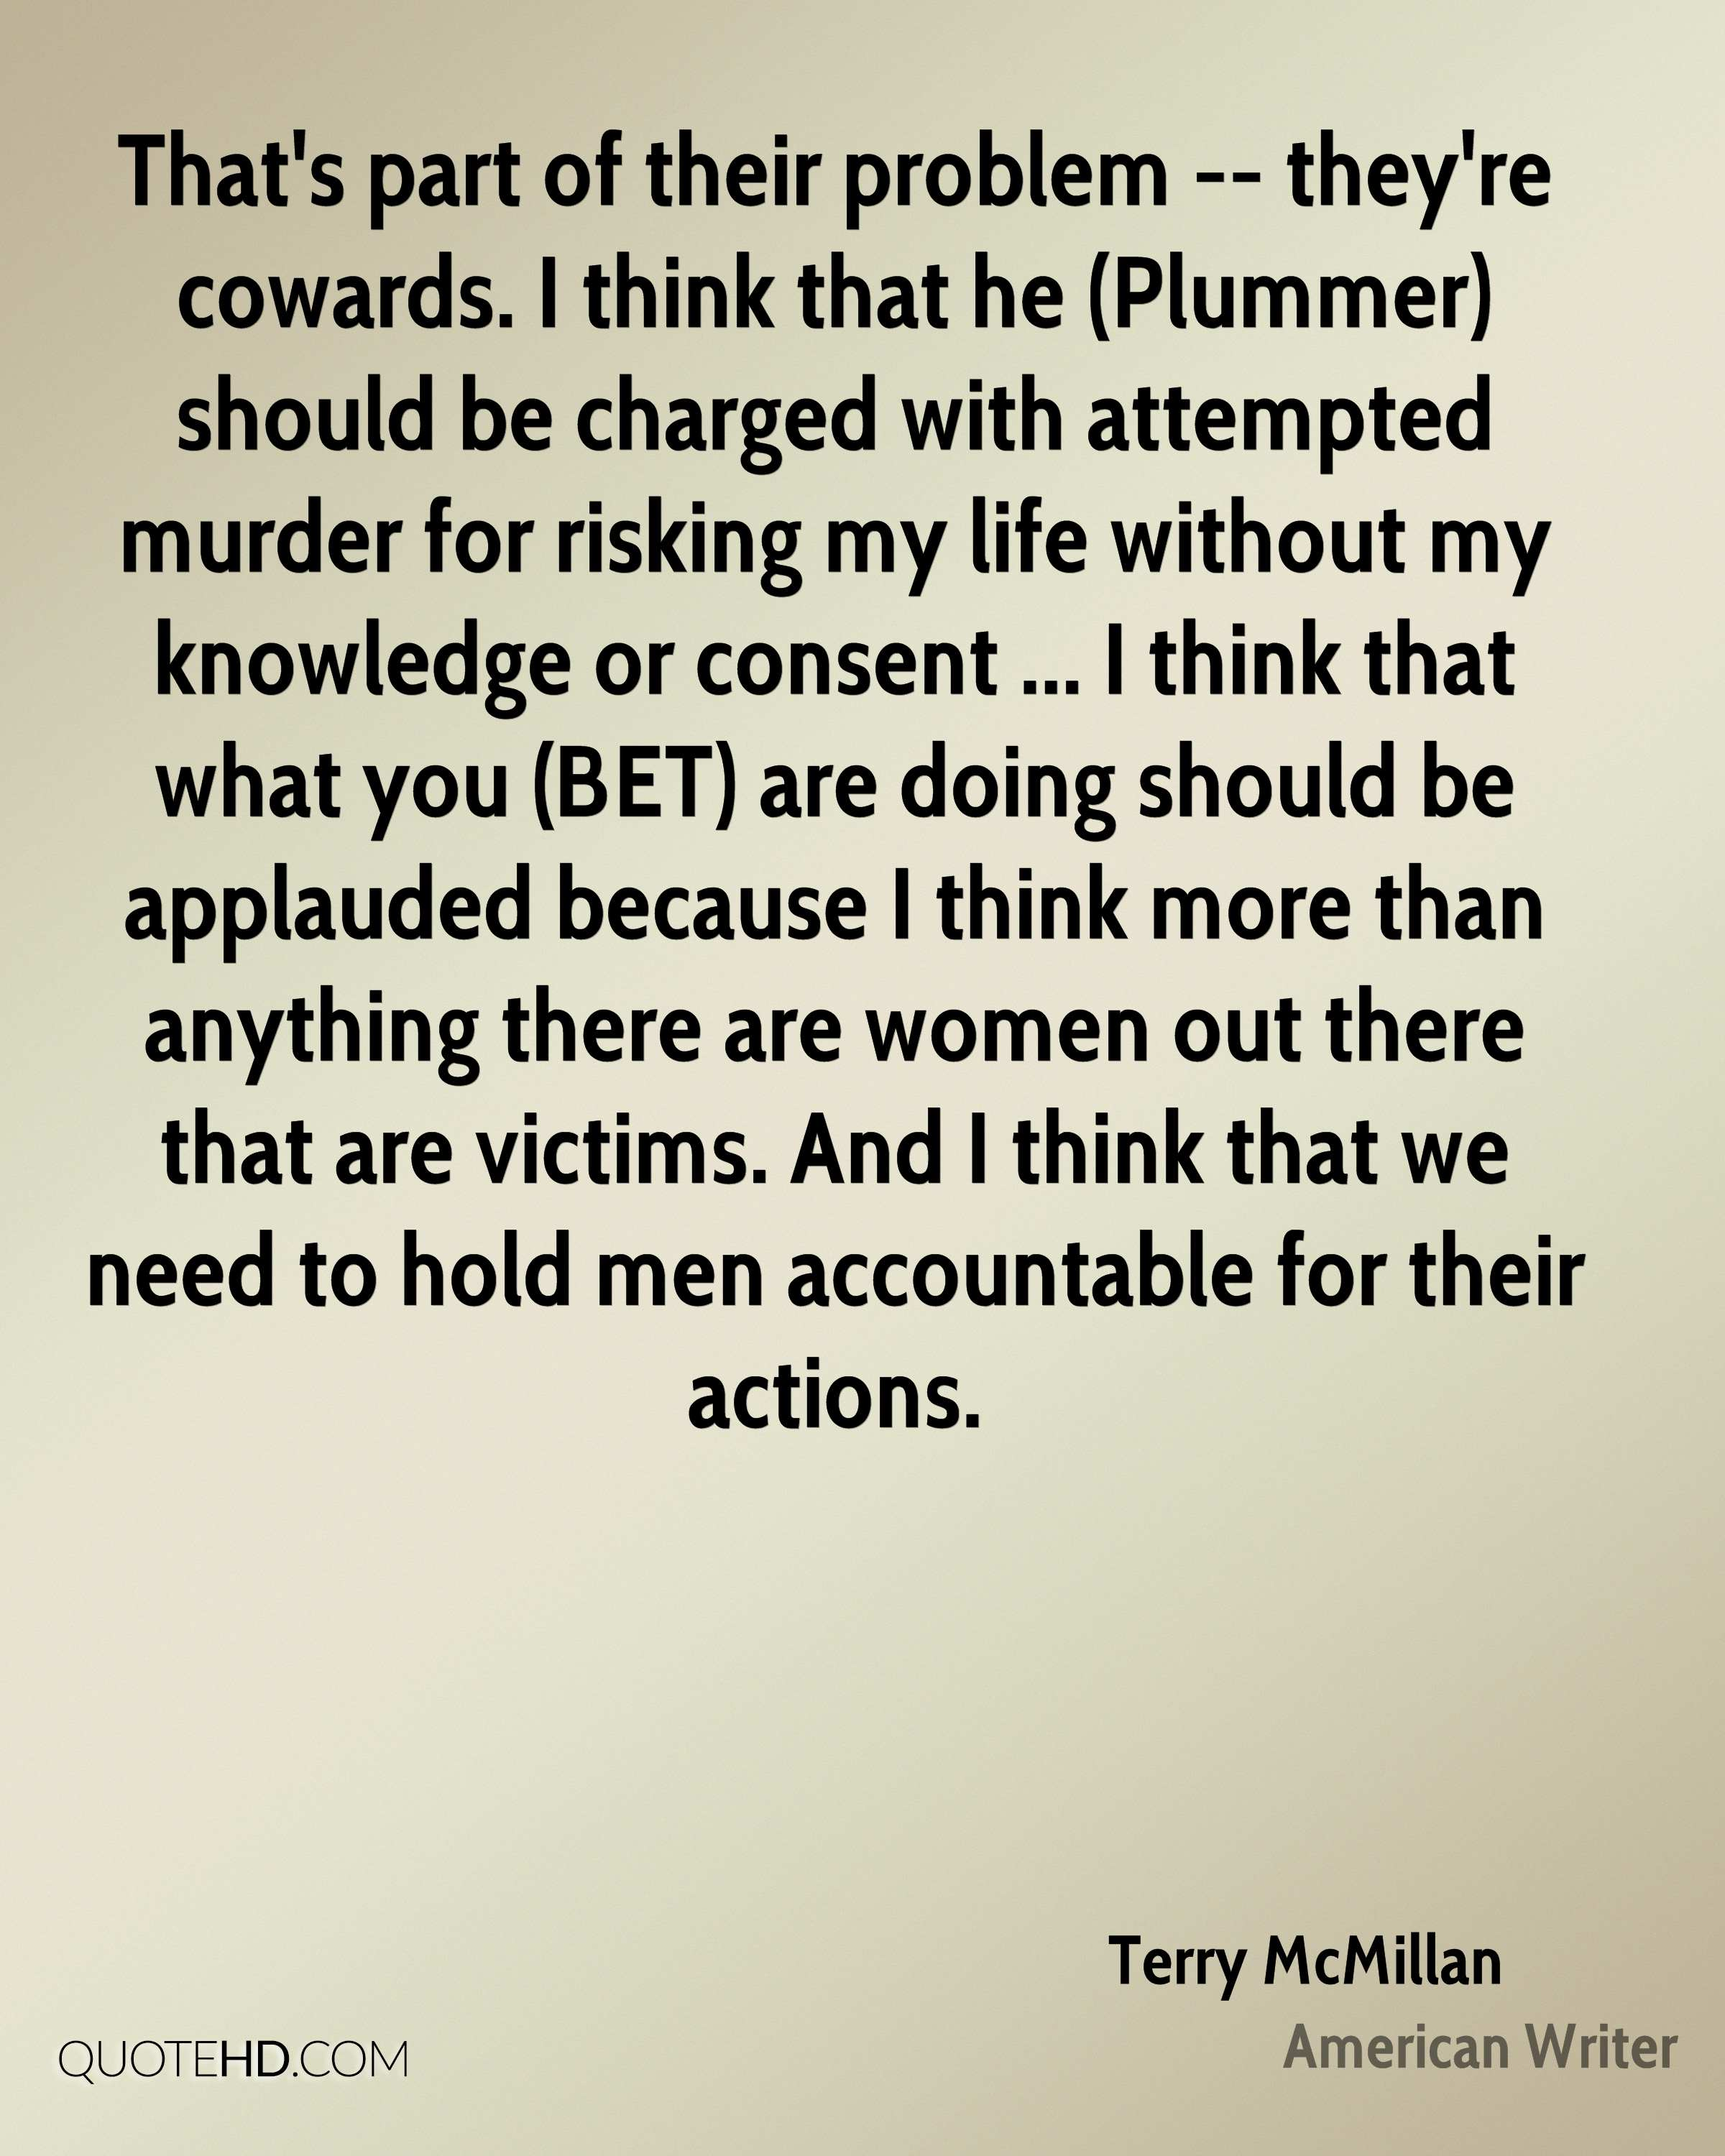 That's part of their problem -- they're cowards. I think that he (Plummer) should be charged with attempted murder for risking my life without my knowledge or consent ... I think that what you (BET) are doing should be applauded because I think more than anything there are women out there that are victims. And I think that we need to hold men accountable for their actions.